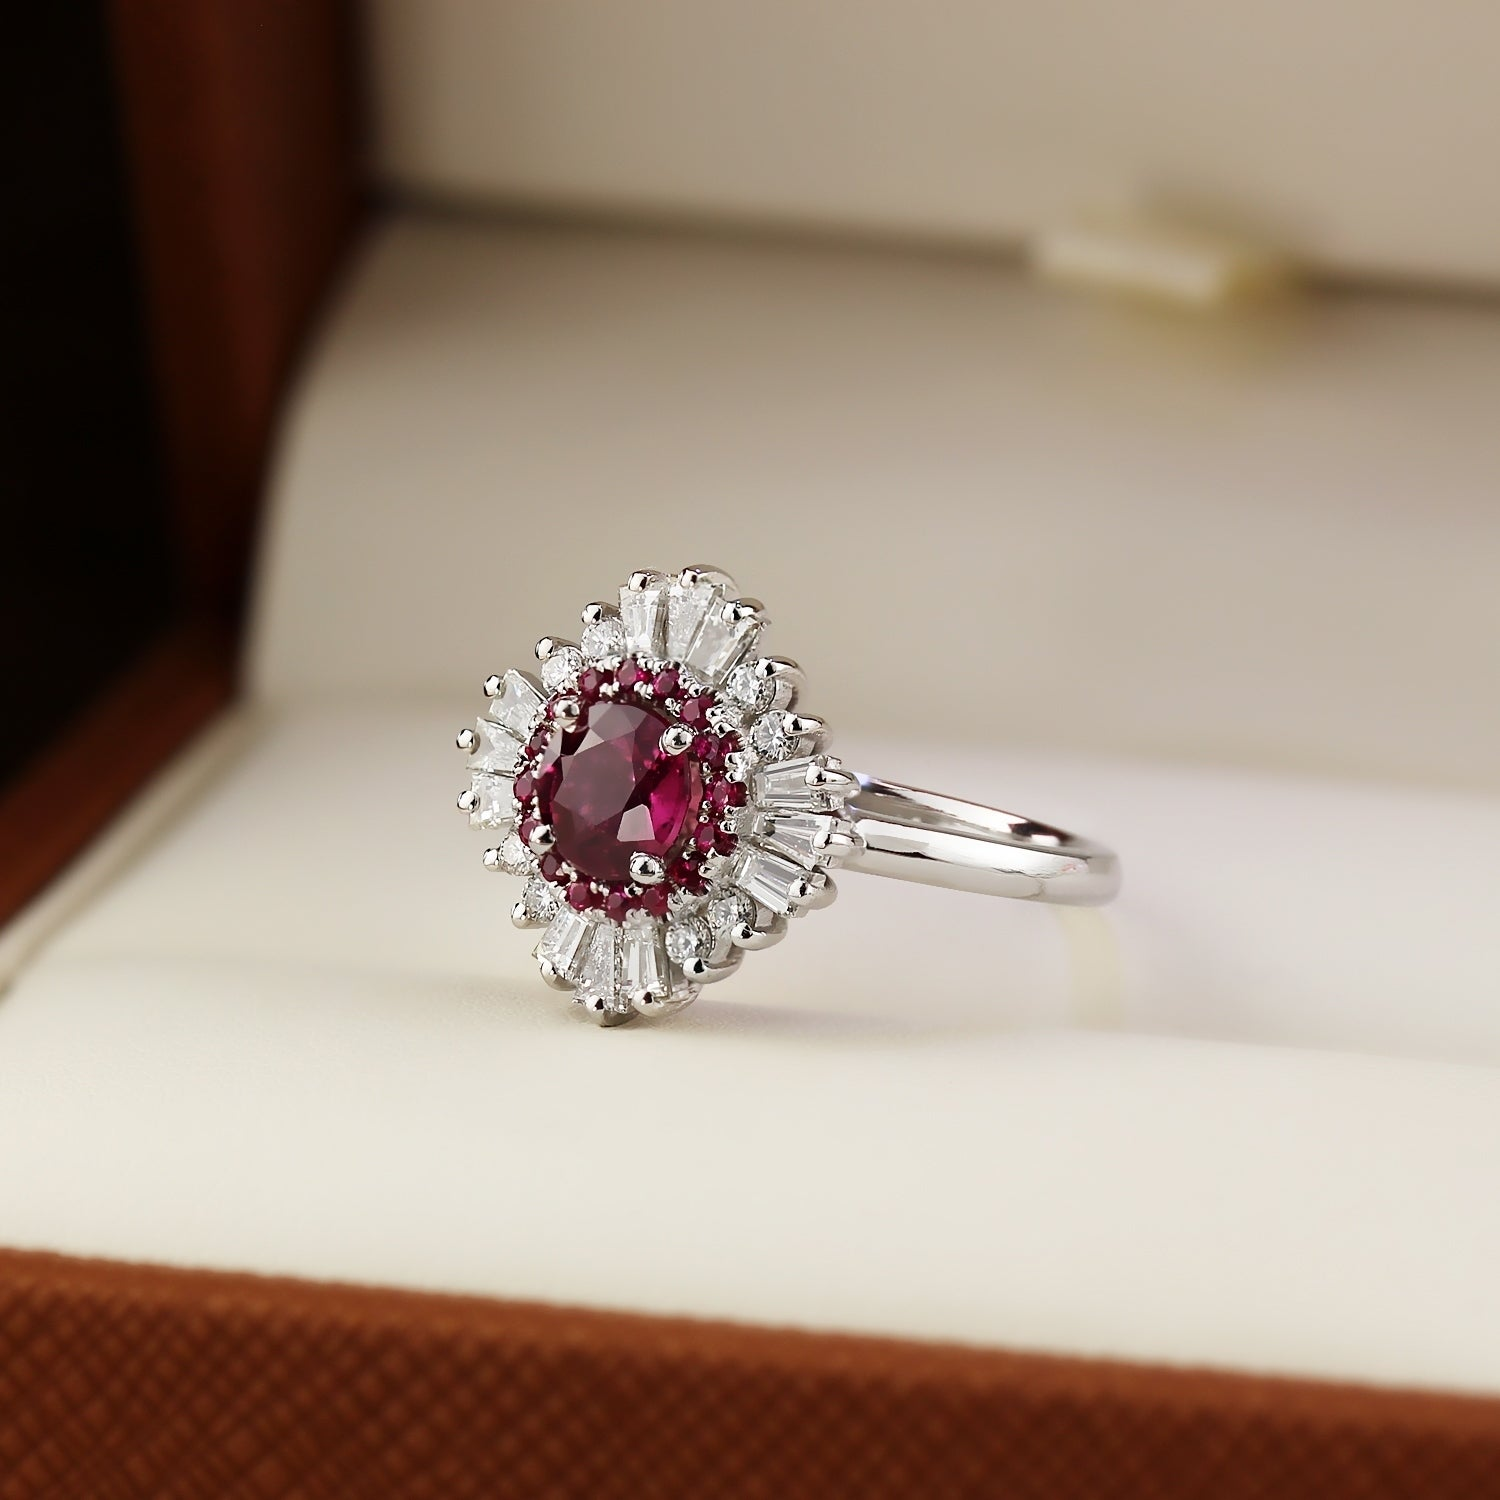 5994abe96 Auriya 1 1/6ct Red Ruby and 5/8ctw Ballerina Halo Baguette Diamond  Engagement Ring 14k Gold